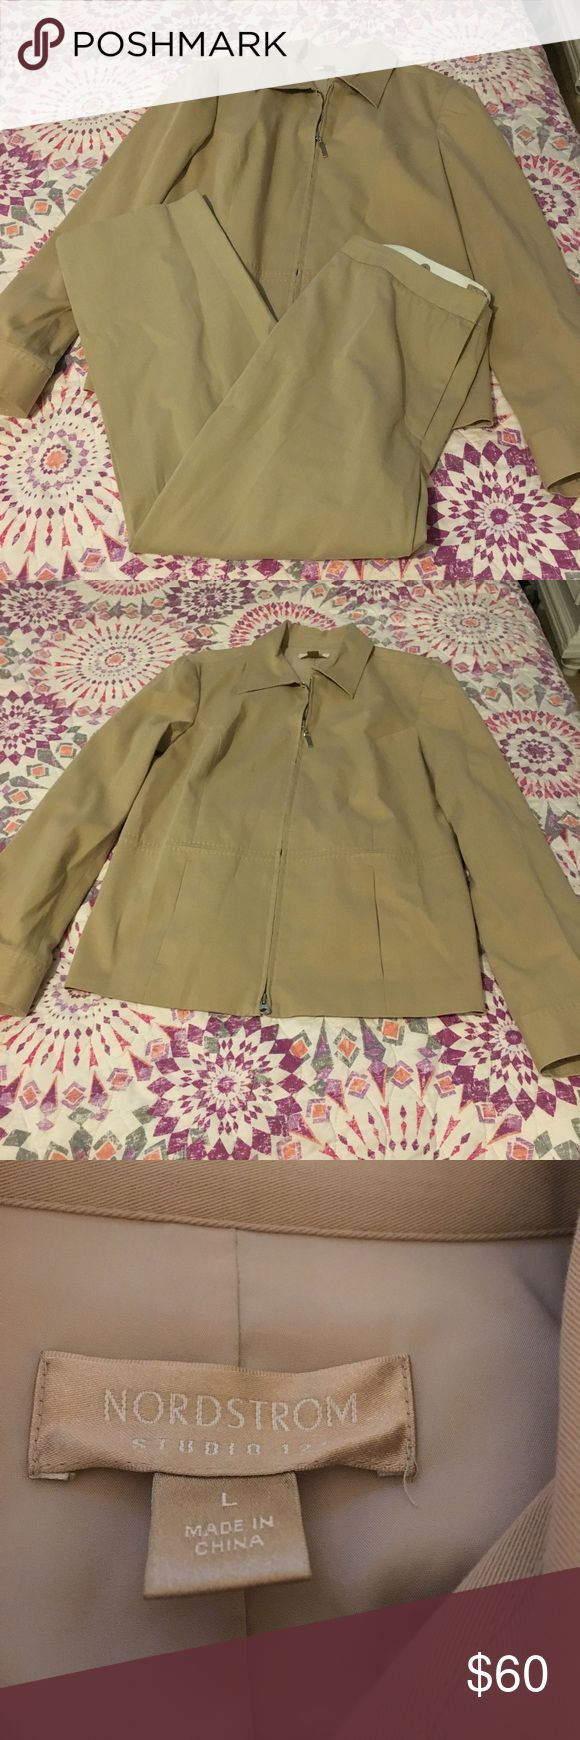 Nordstrom suit! Super cute tan Nordstrom suit! Little darker than pic! Great condition!!! Top Size L bottoms size 10. (#293) Nordstrom Jackets & Coats